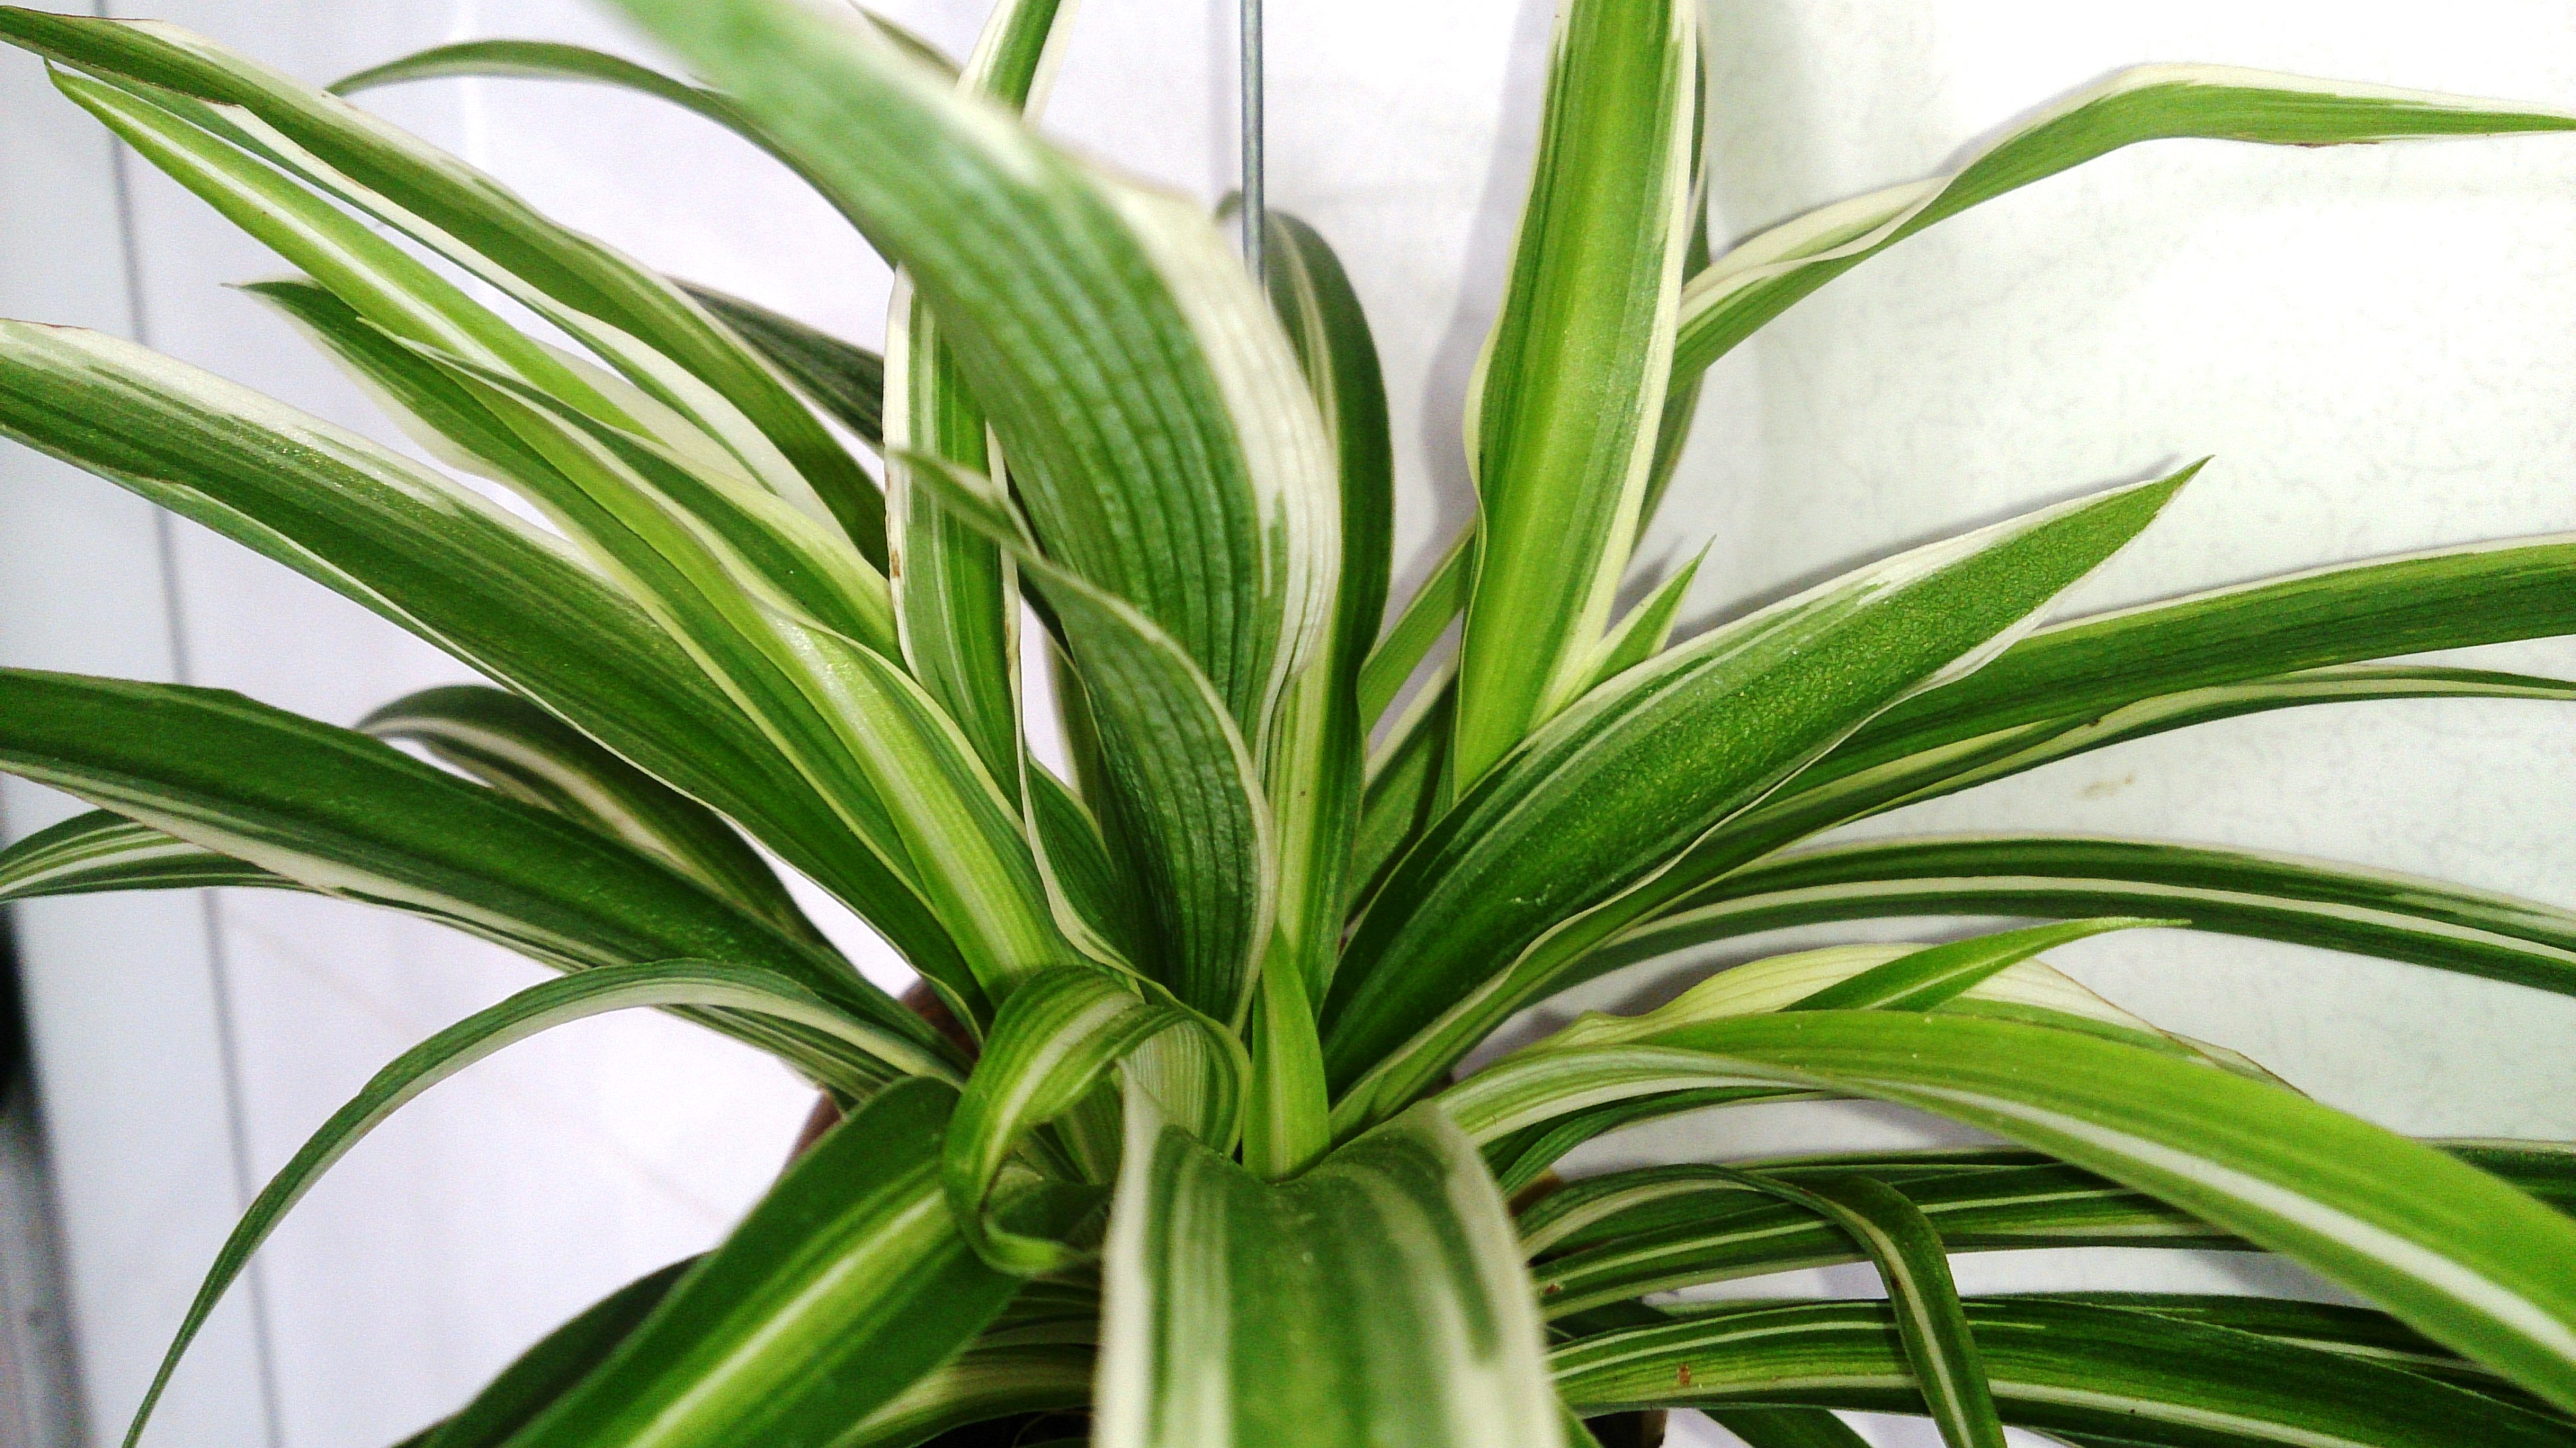 20 Indoor Plants That Will Improve Your Air Quailty